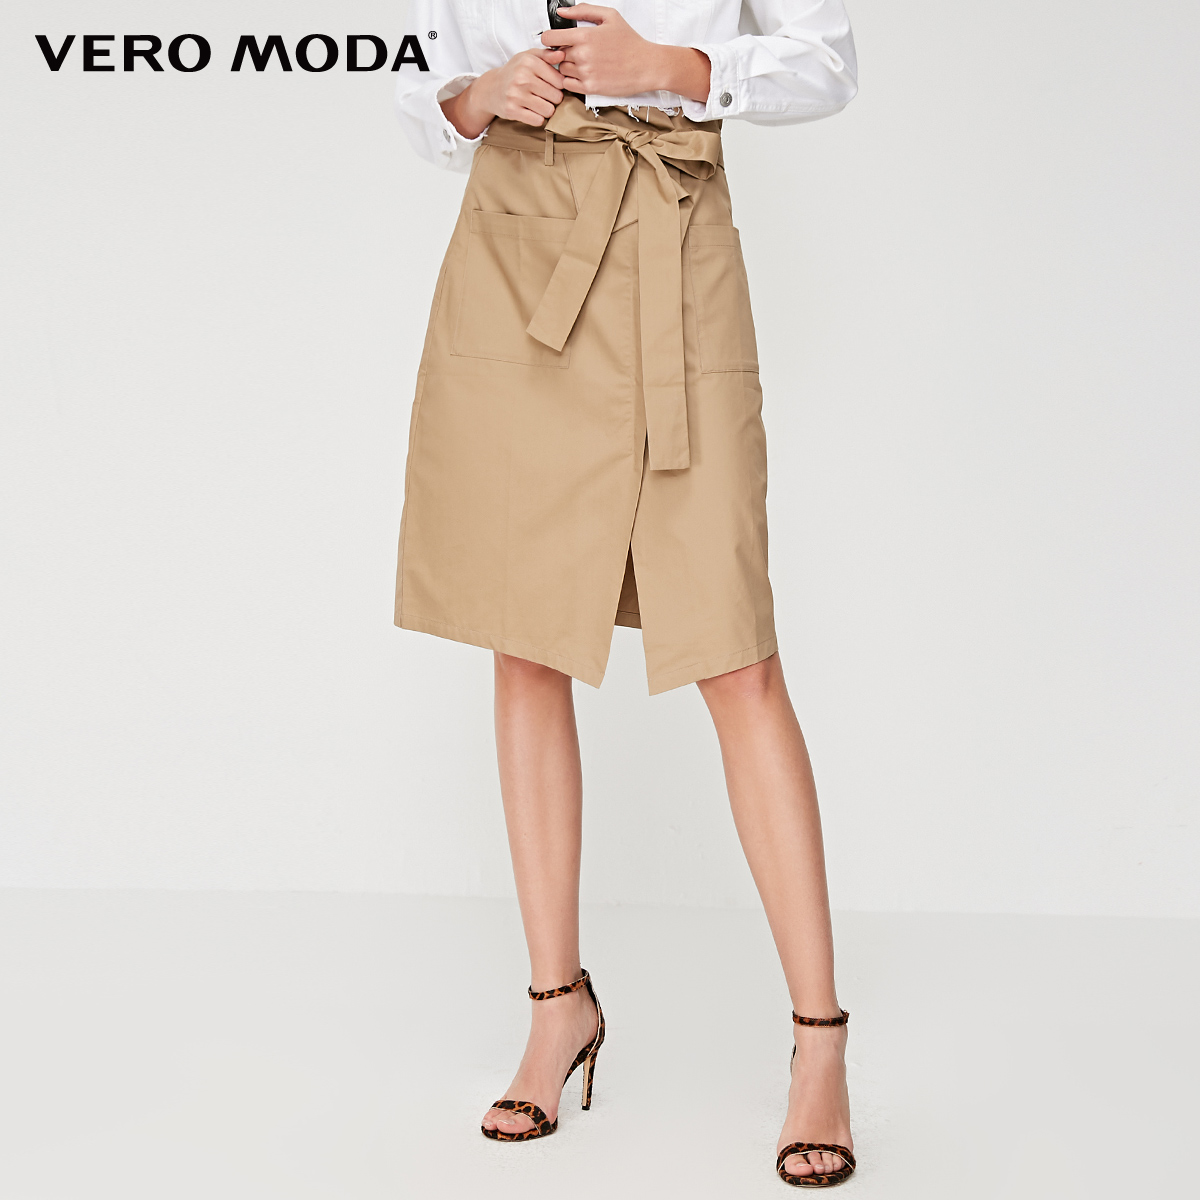 Vero Moda Women's 100% Cotton Lace-up Skirt | 319216531